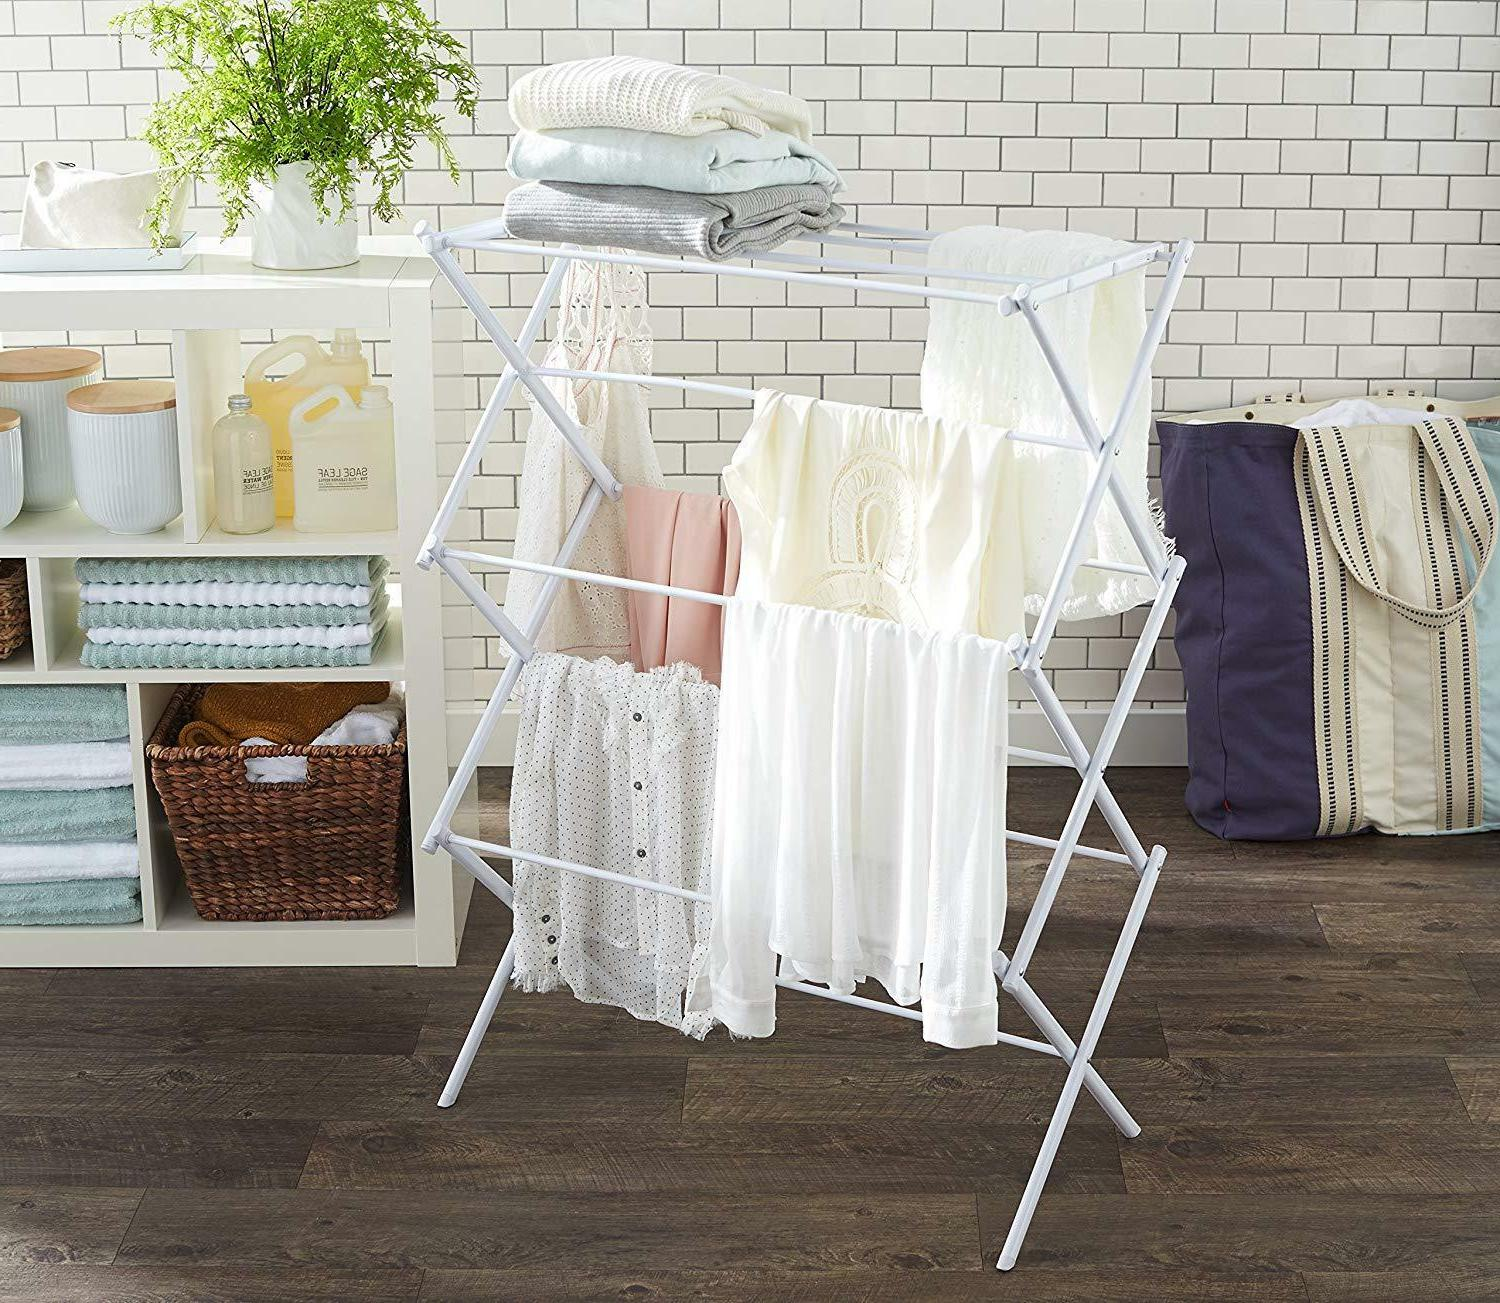 AmazonBasics Foldable Drying - White Fast Delivery FREE